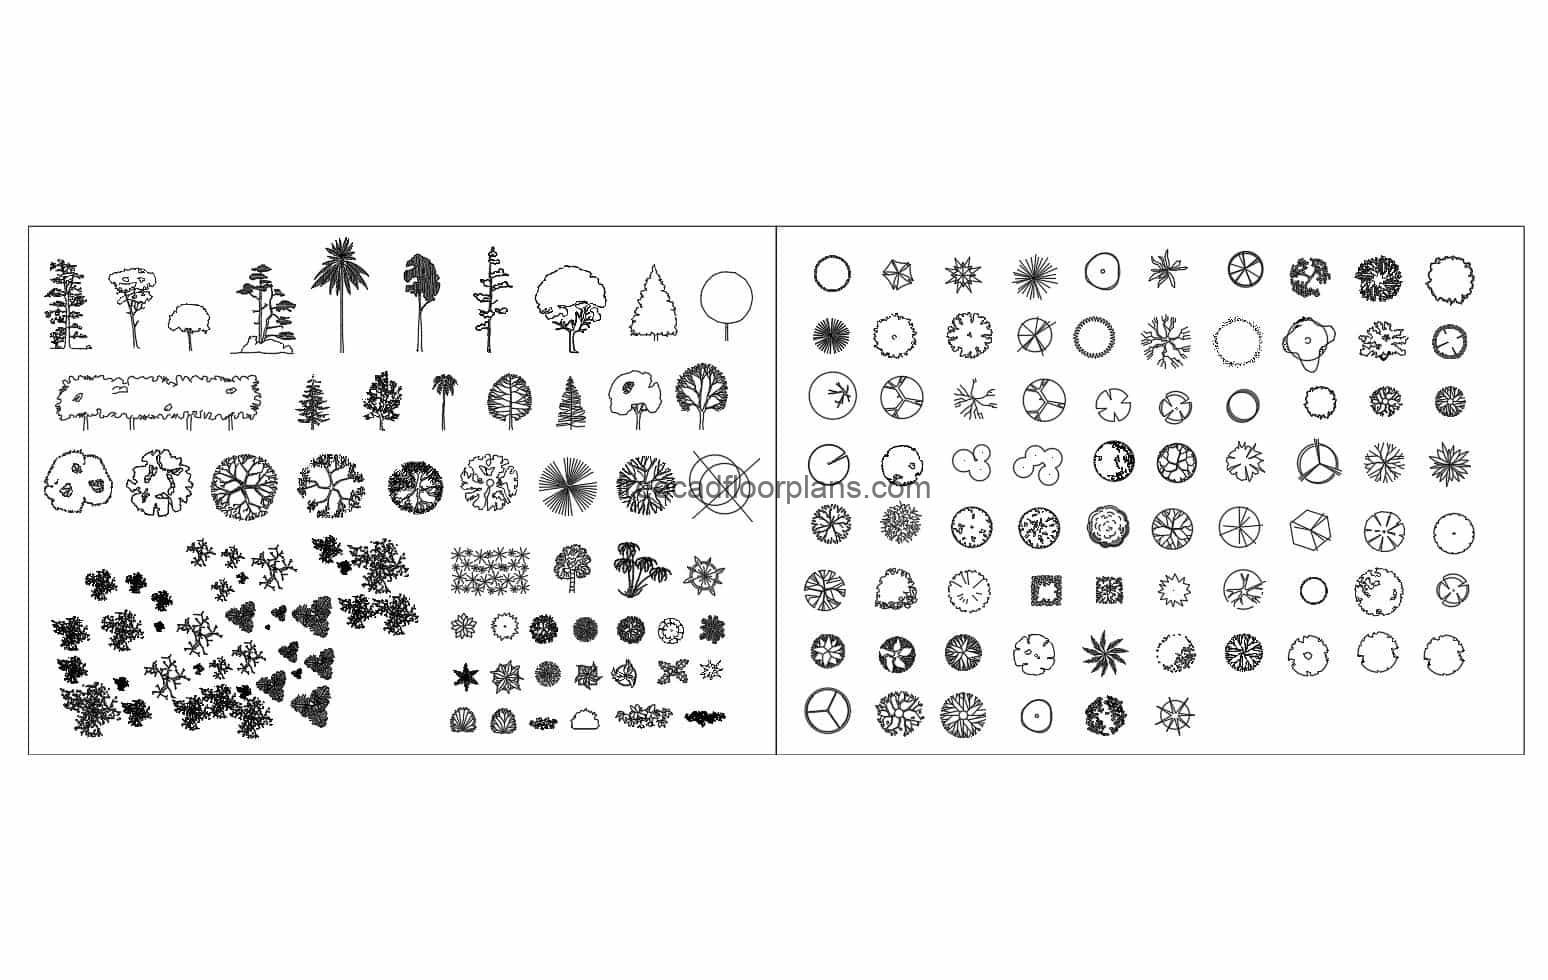 Complete collection of Trees and Plants in Autocad DWG blocks for free download